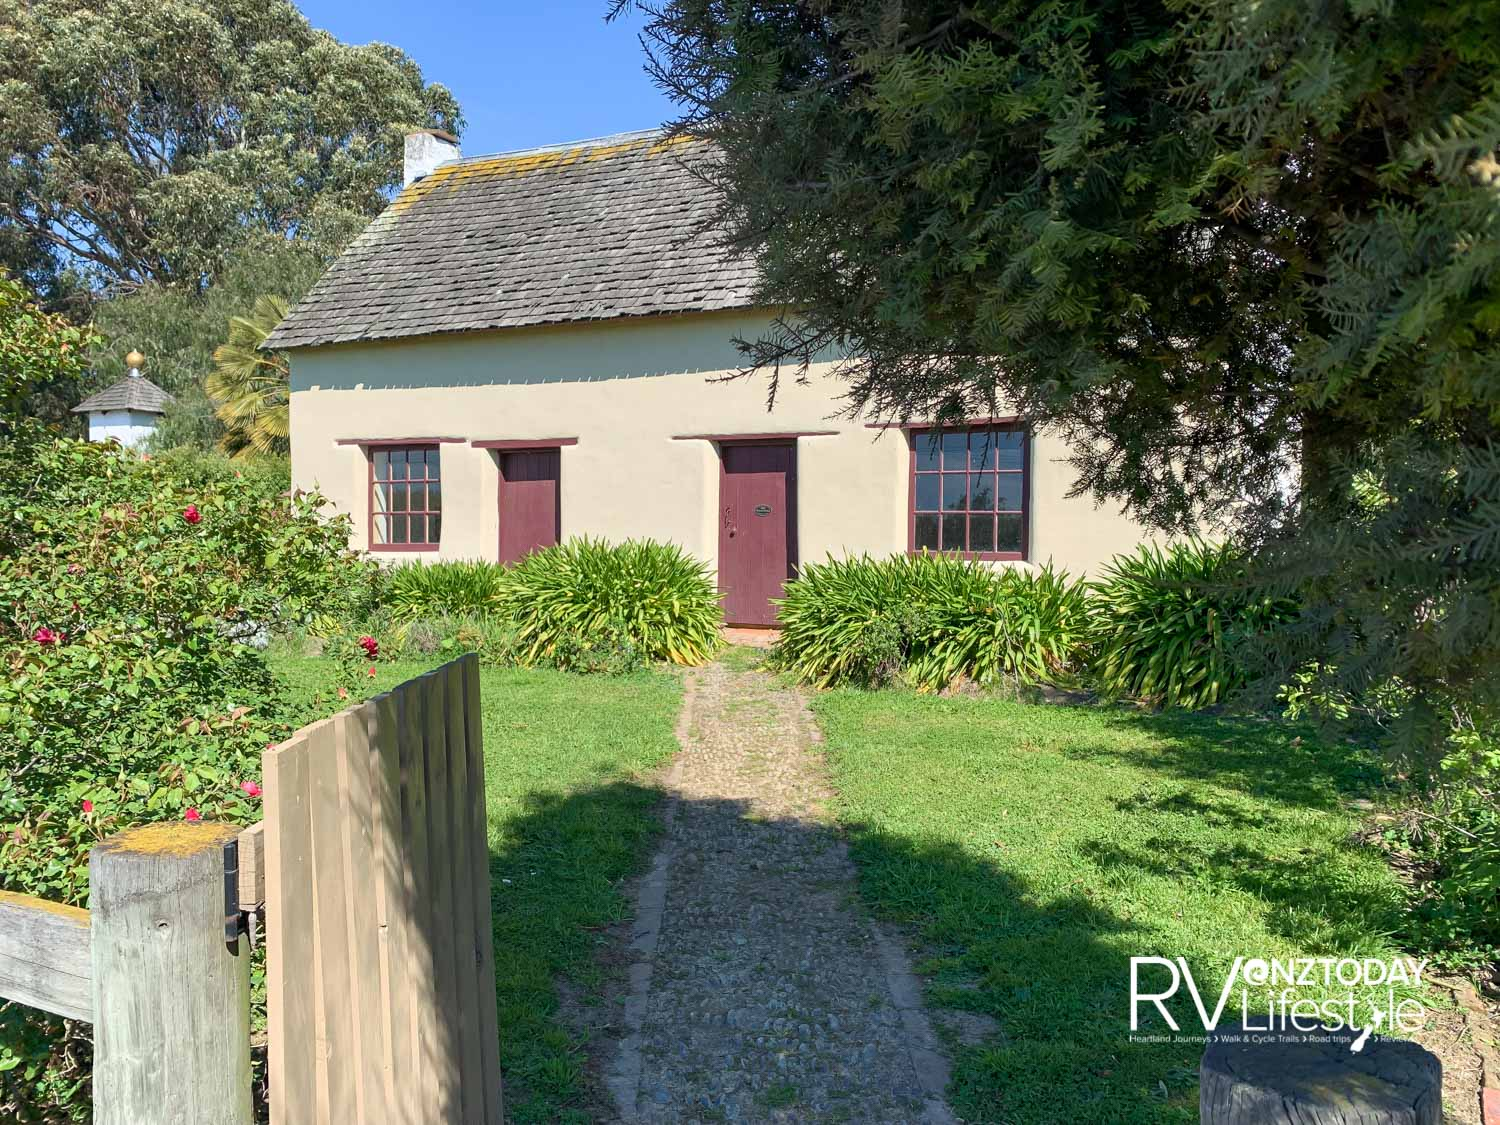 Cob cottage outside Blenheim has been a familiar roadside sight for many years